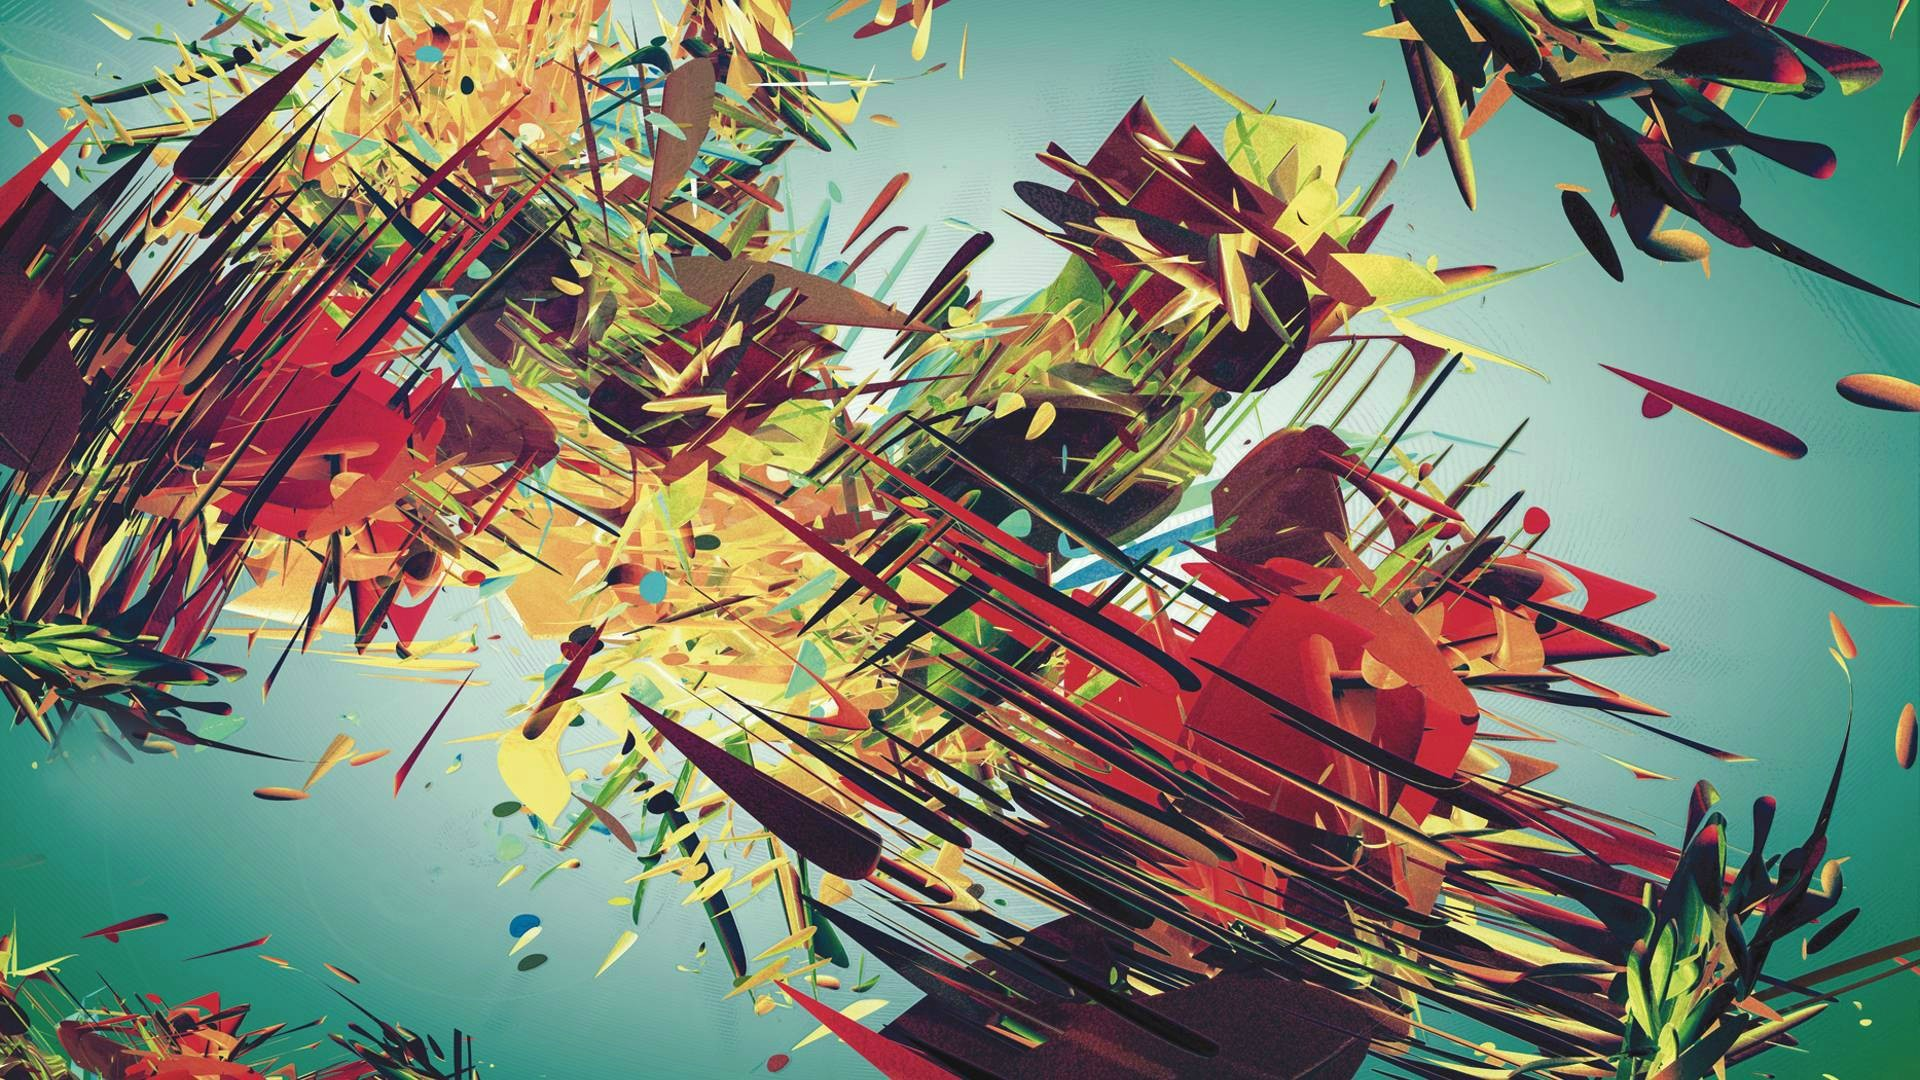 Abstract Digital Art Hd Abstract 4k Wallpapers Images